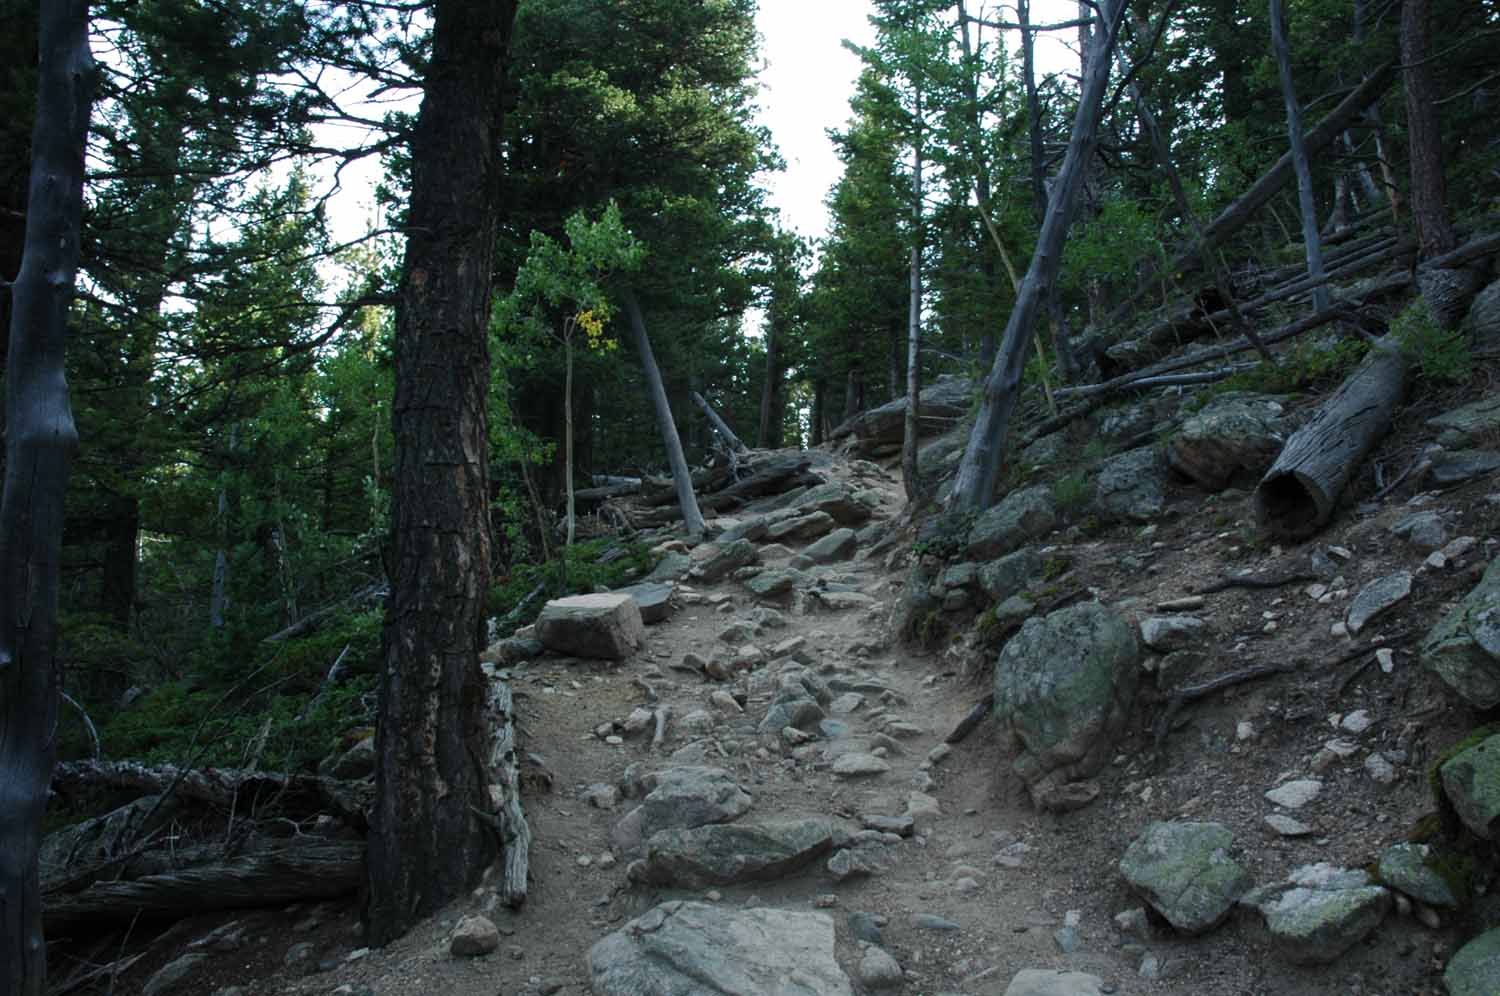 The Deer Mountain trail is listed as moderate?  The climb is over 1,200 feet